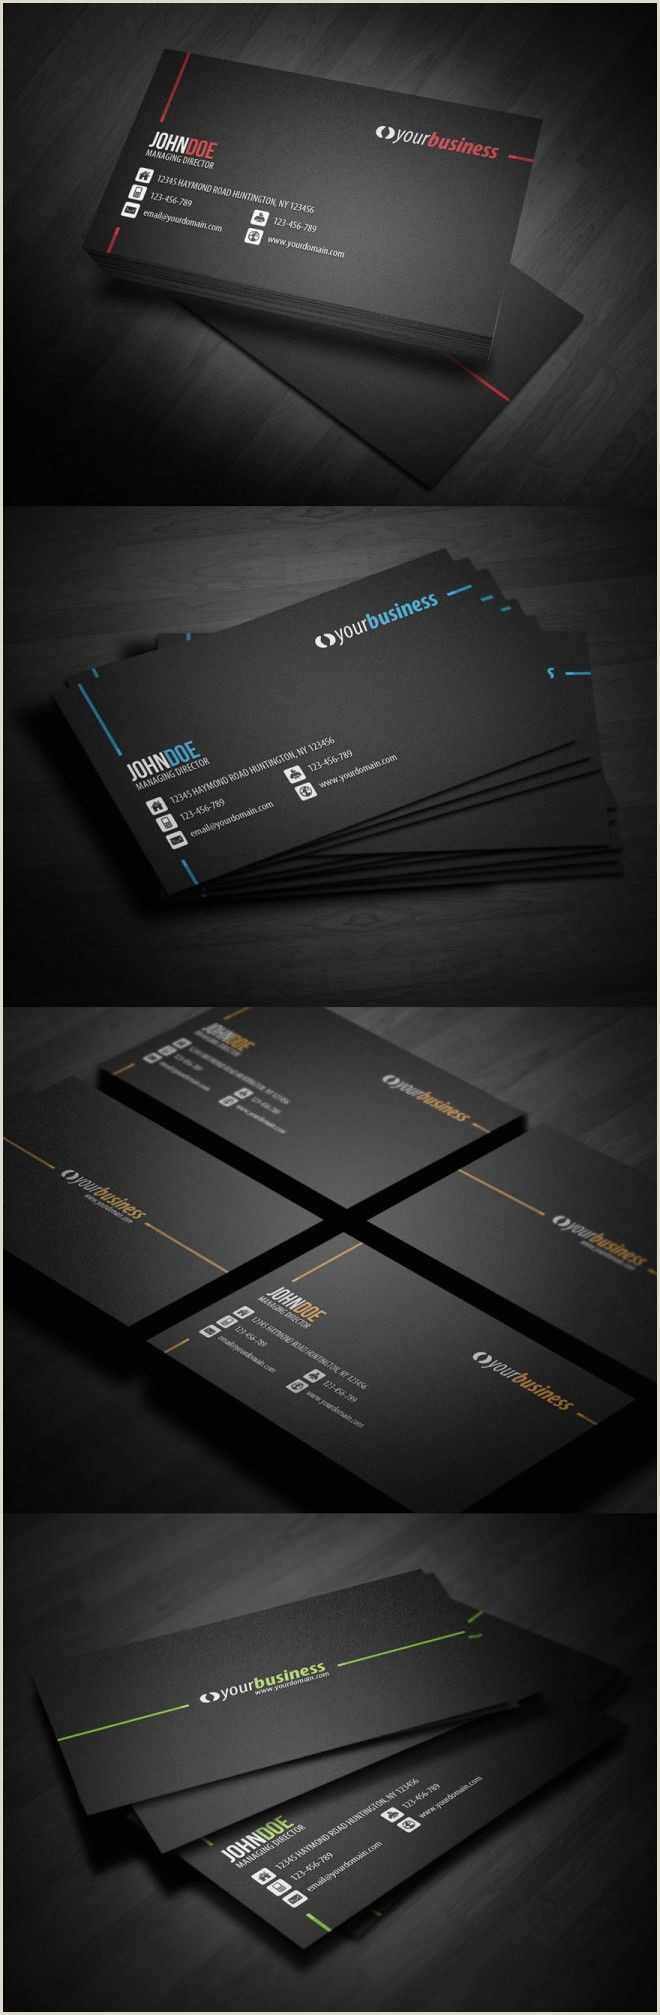 Buisness Card Examples 50 Creative Corporate Business Card Design Examples Design